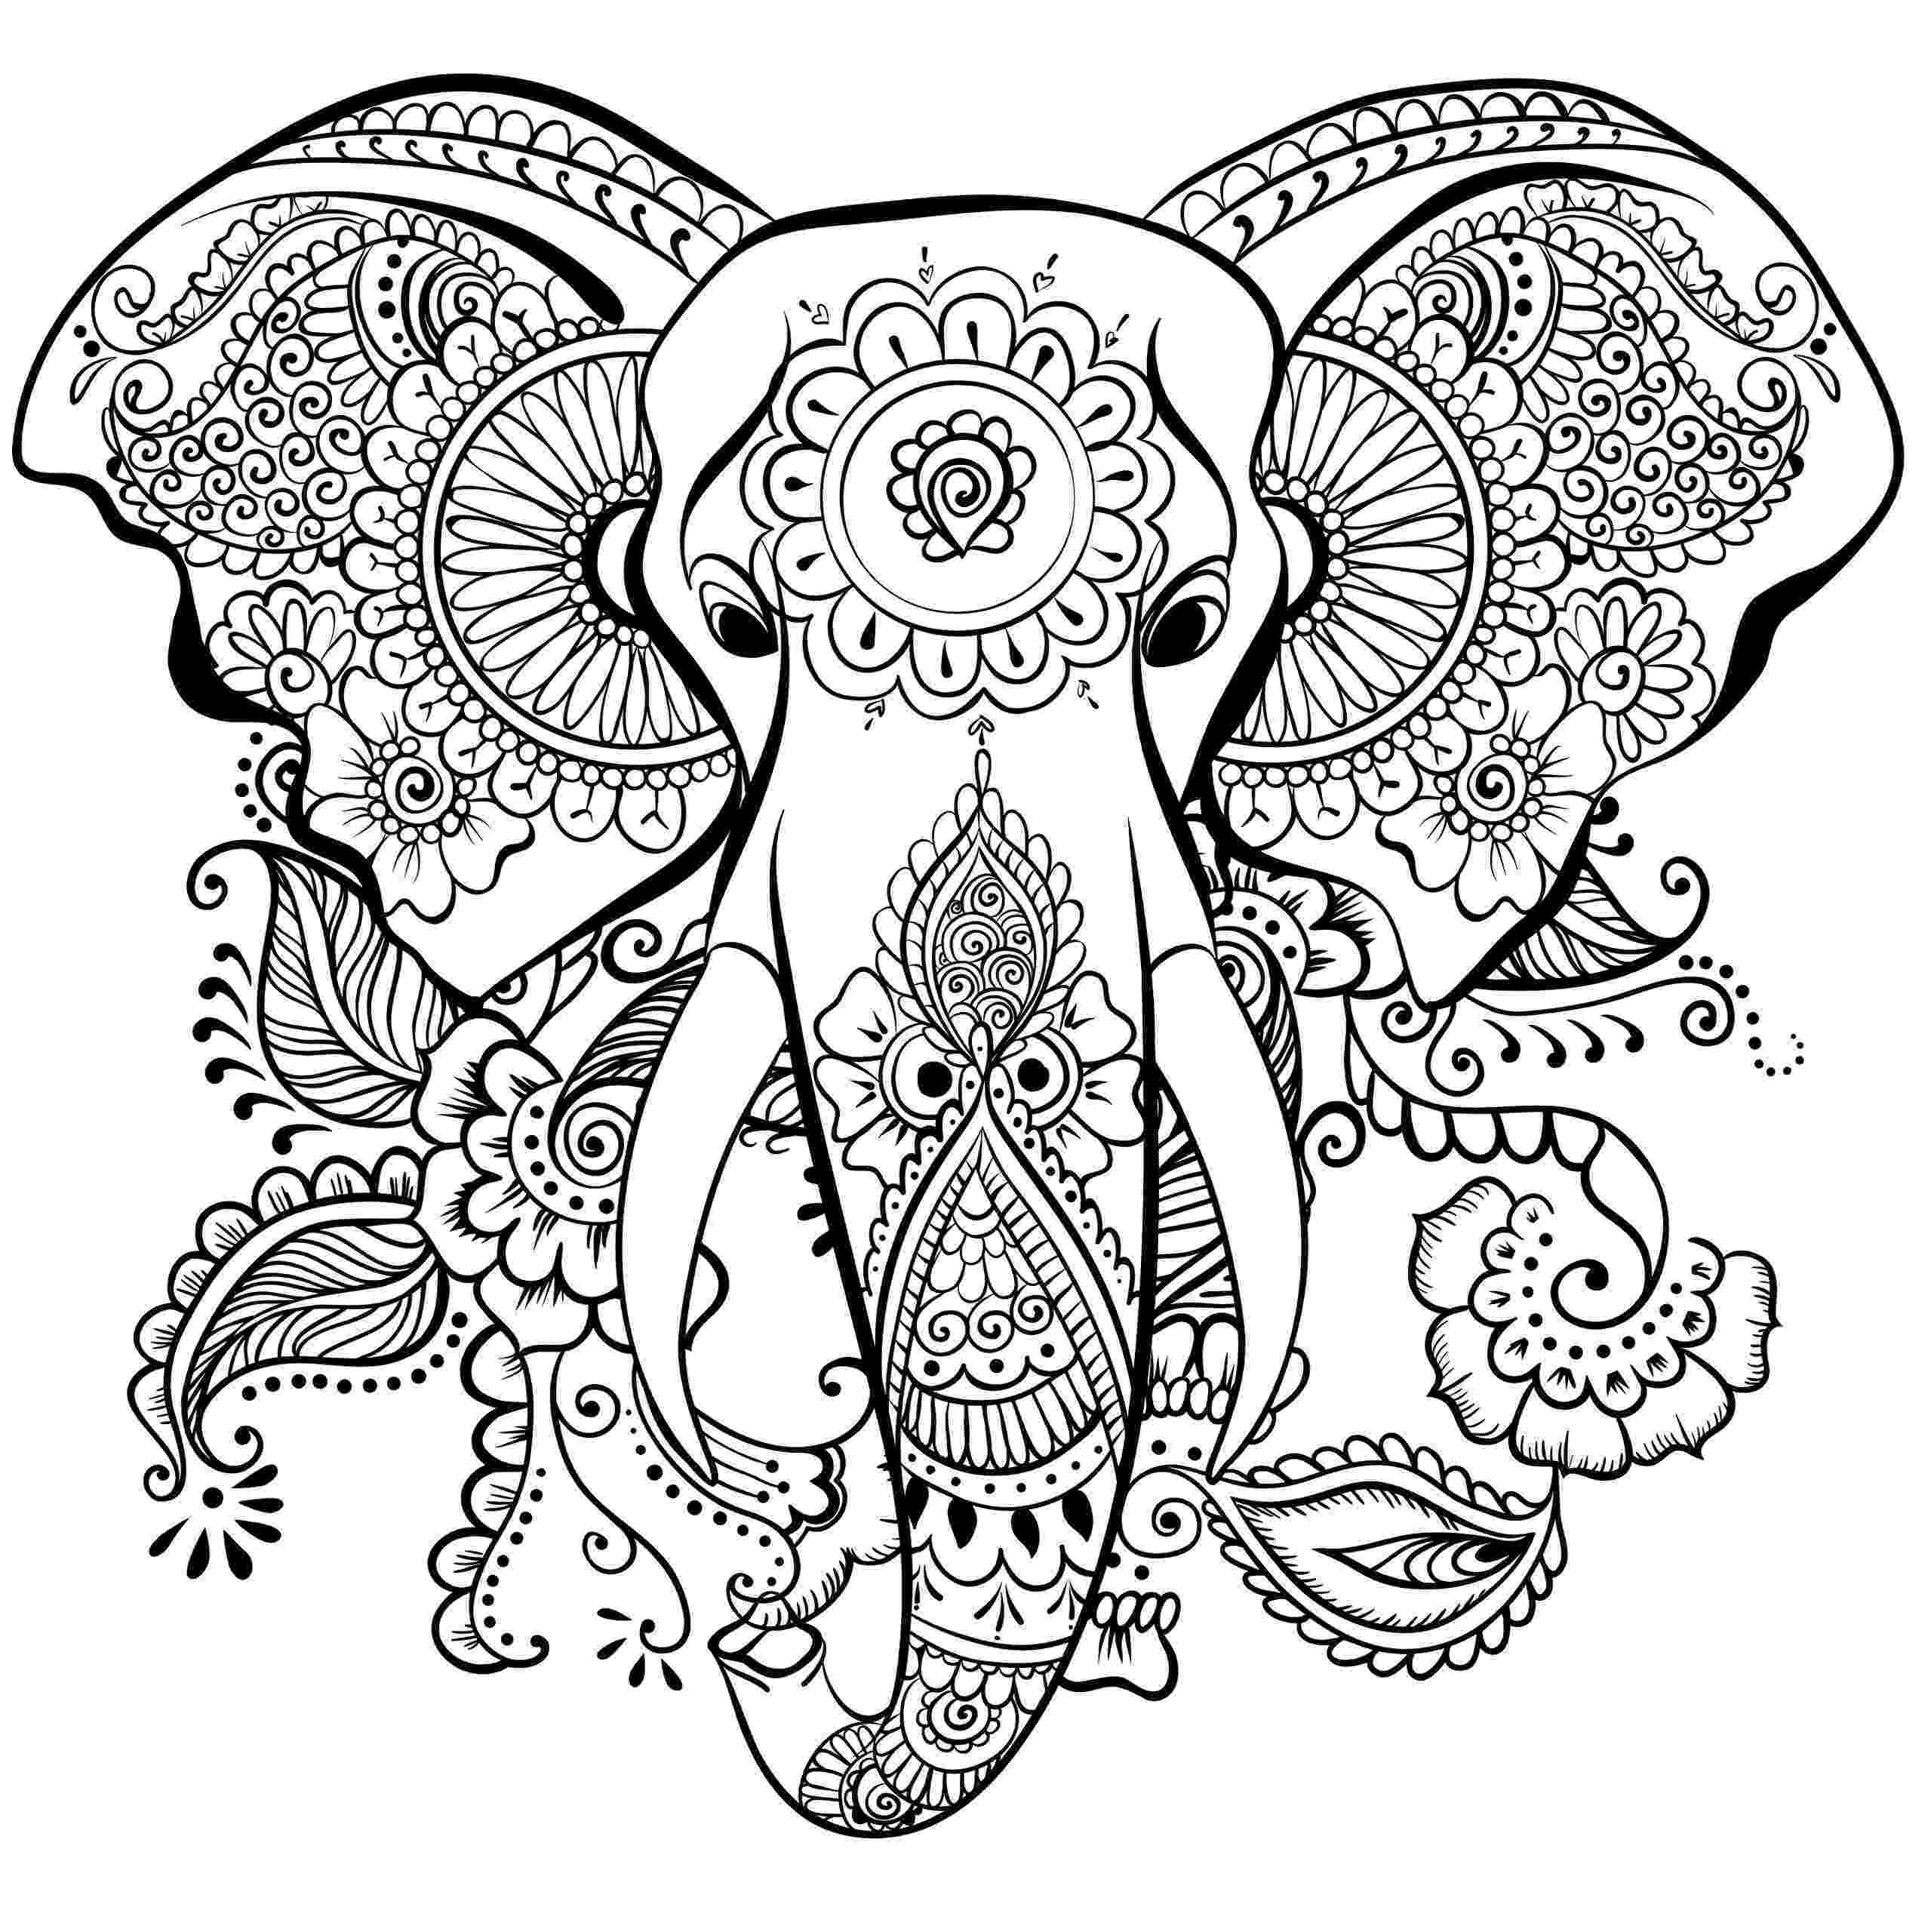 printable coloring pages for adults stress cathym20 anti stress adult coloring pages page 4 stress coloring pages for adults printable